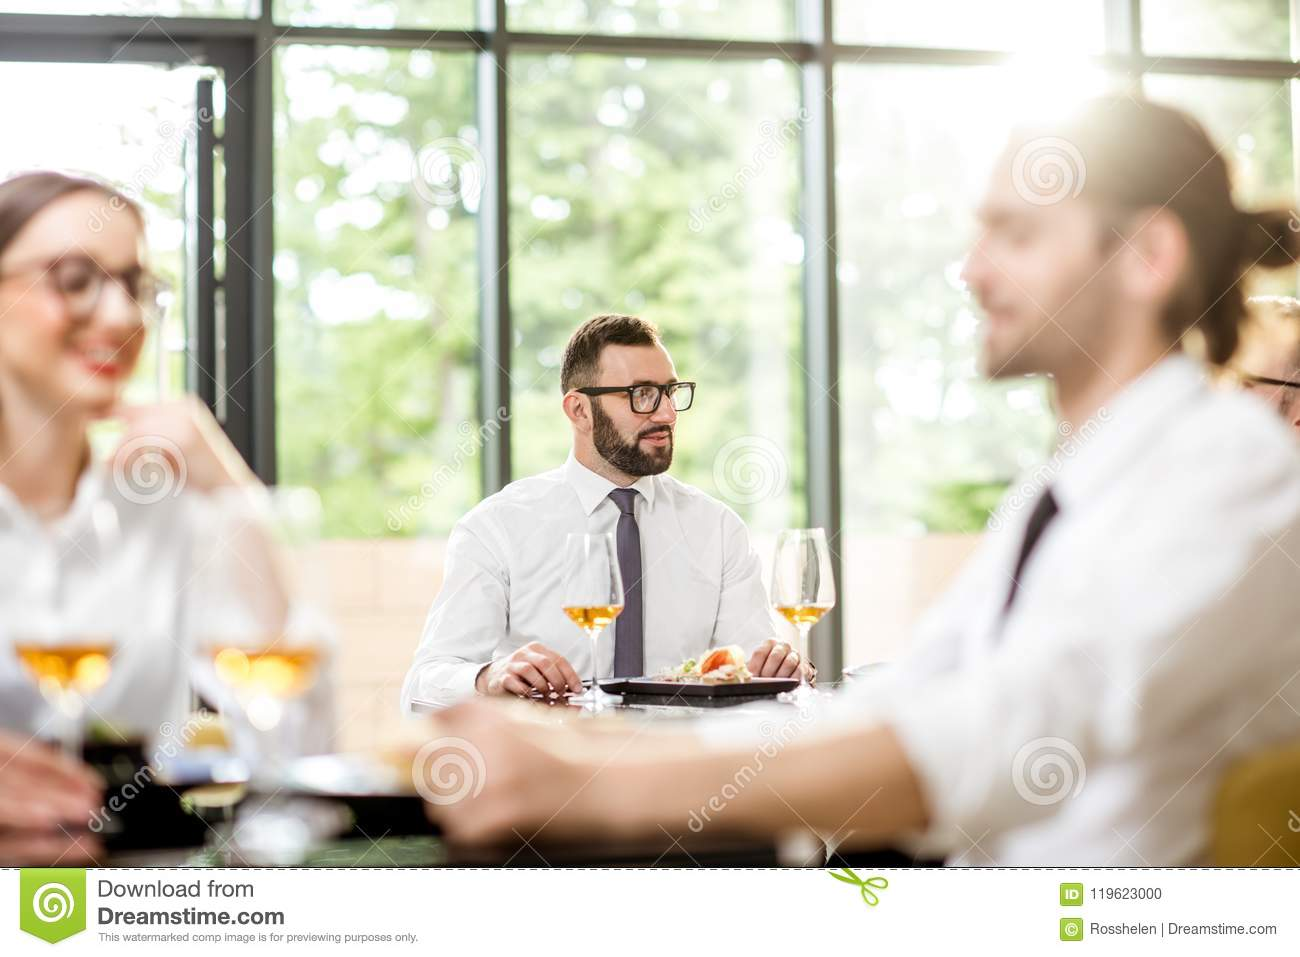 Business people during a lunch at the restaurant